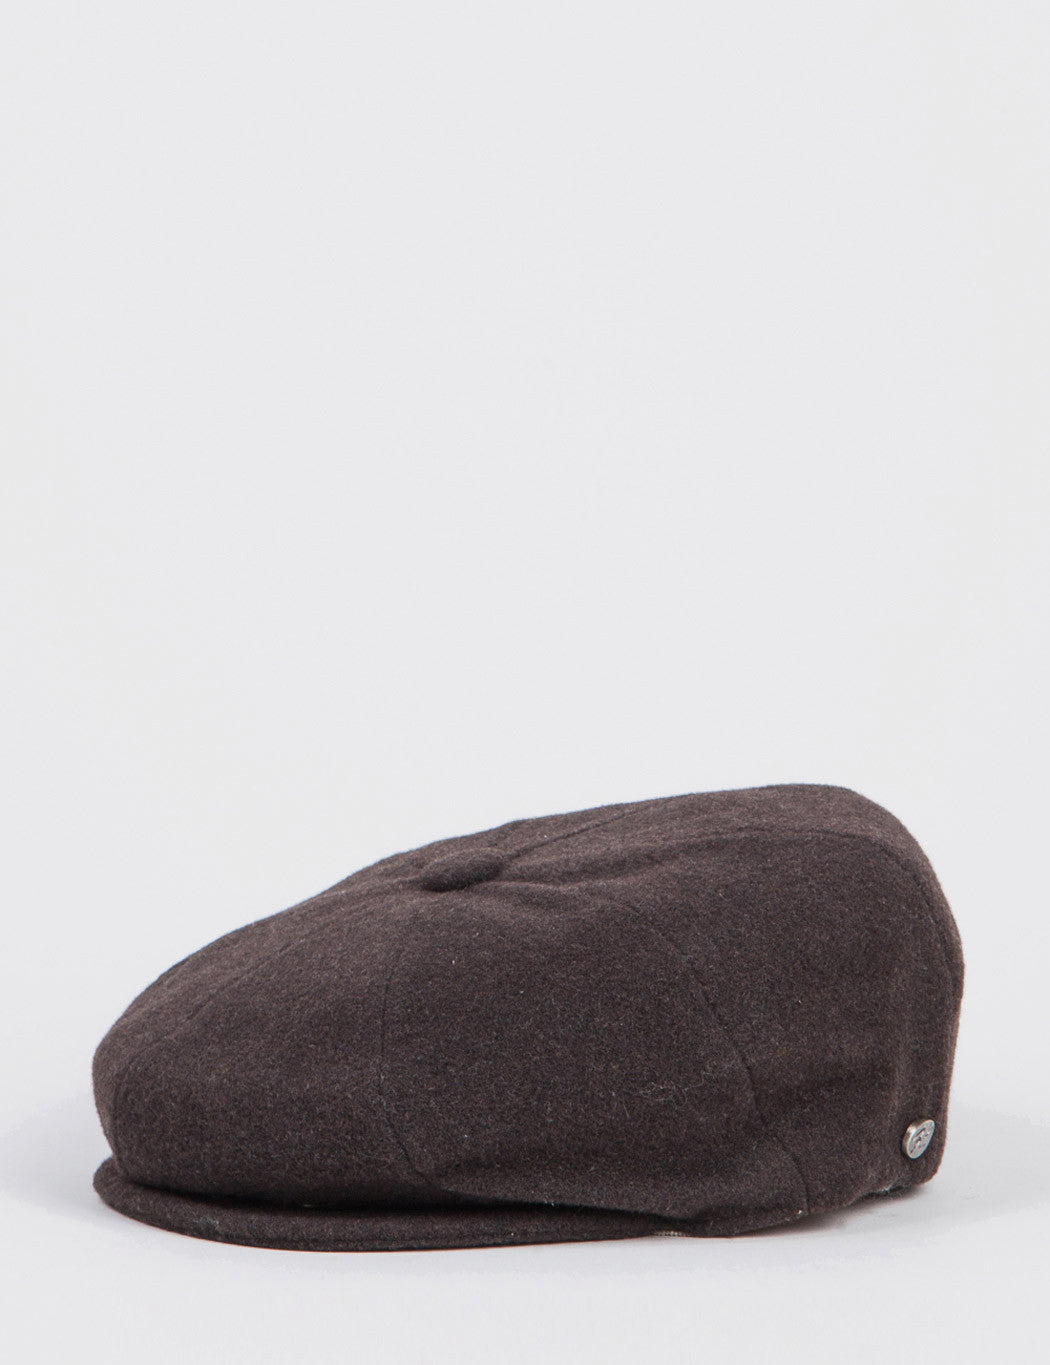 Bailey Galvin Wool Newsboy Cap - Brown - Brown / Small (54-55cm)